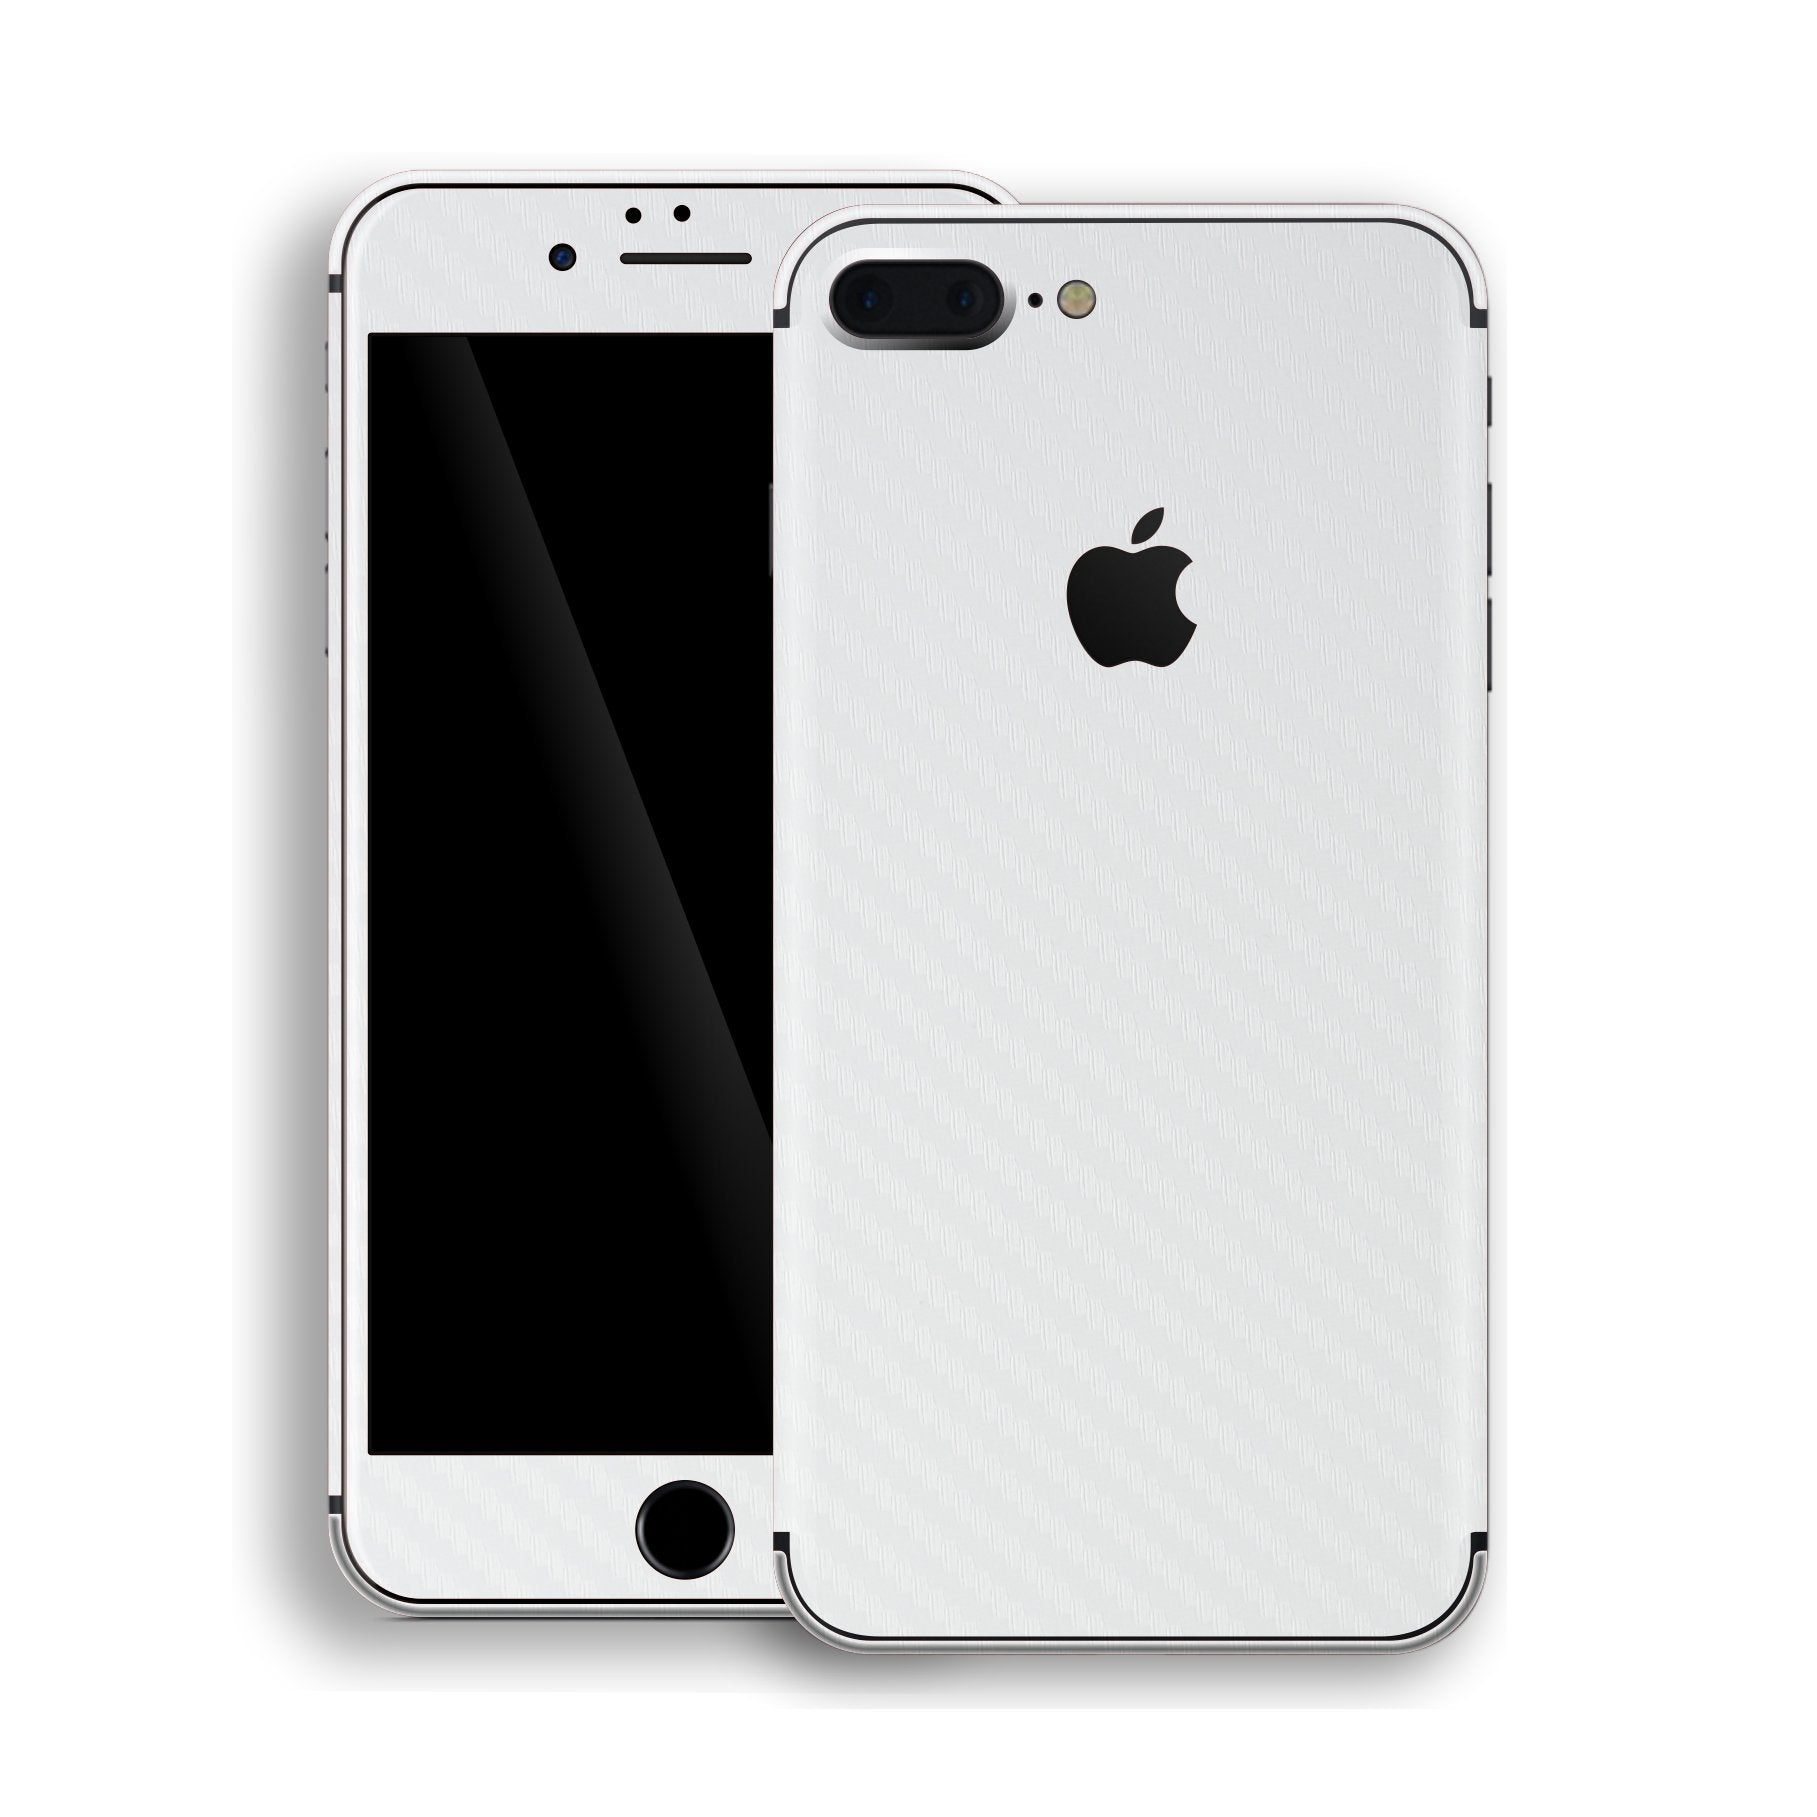 iPhone 8 Plus 3D Textured White Carbon Fibre Fiber Skin, Decal, Wrap, Protector, Cover by EasySkinz | EasySkinz.com